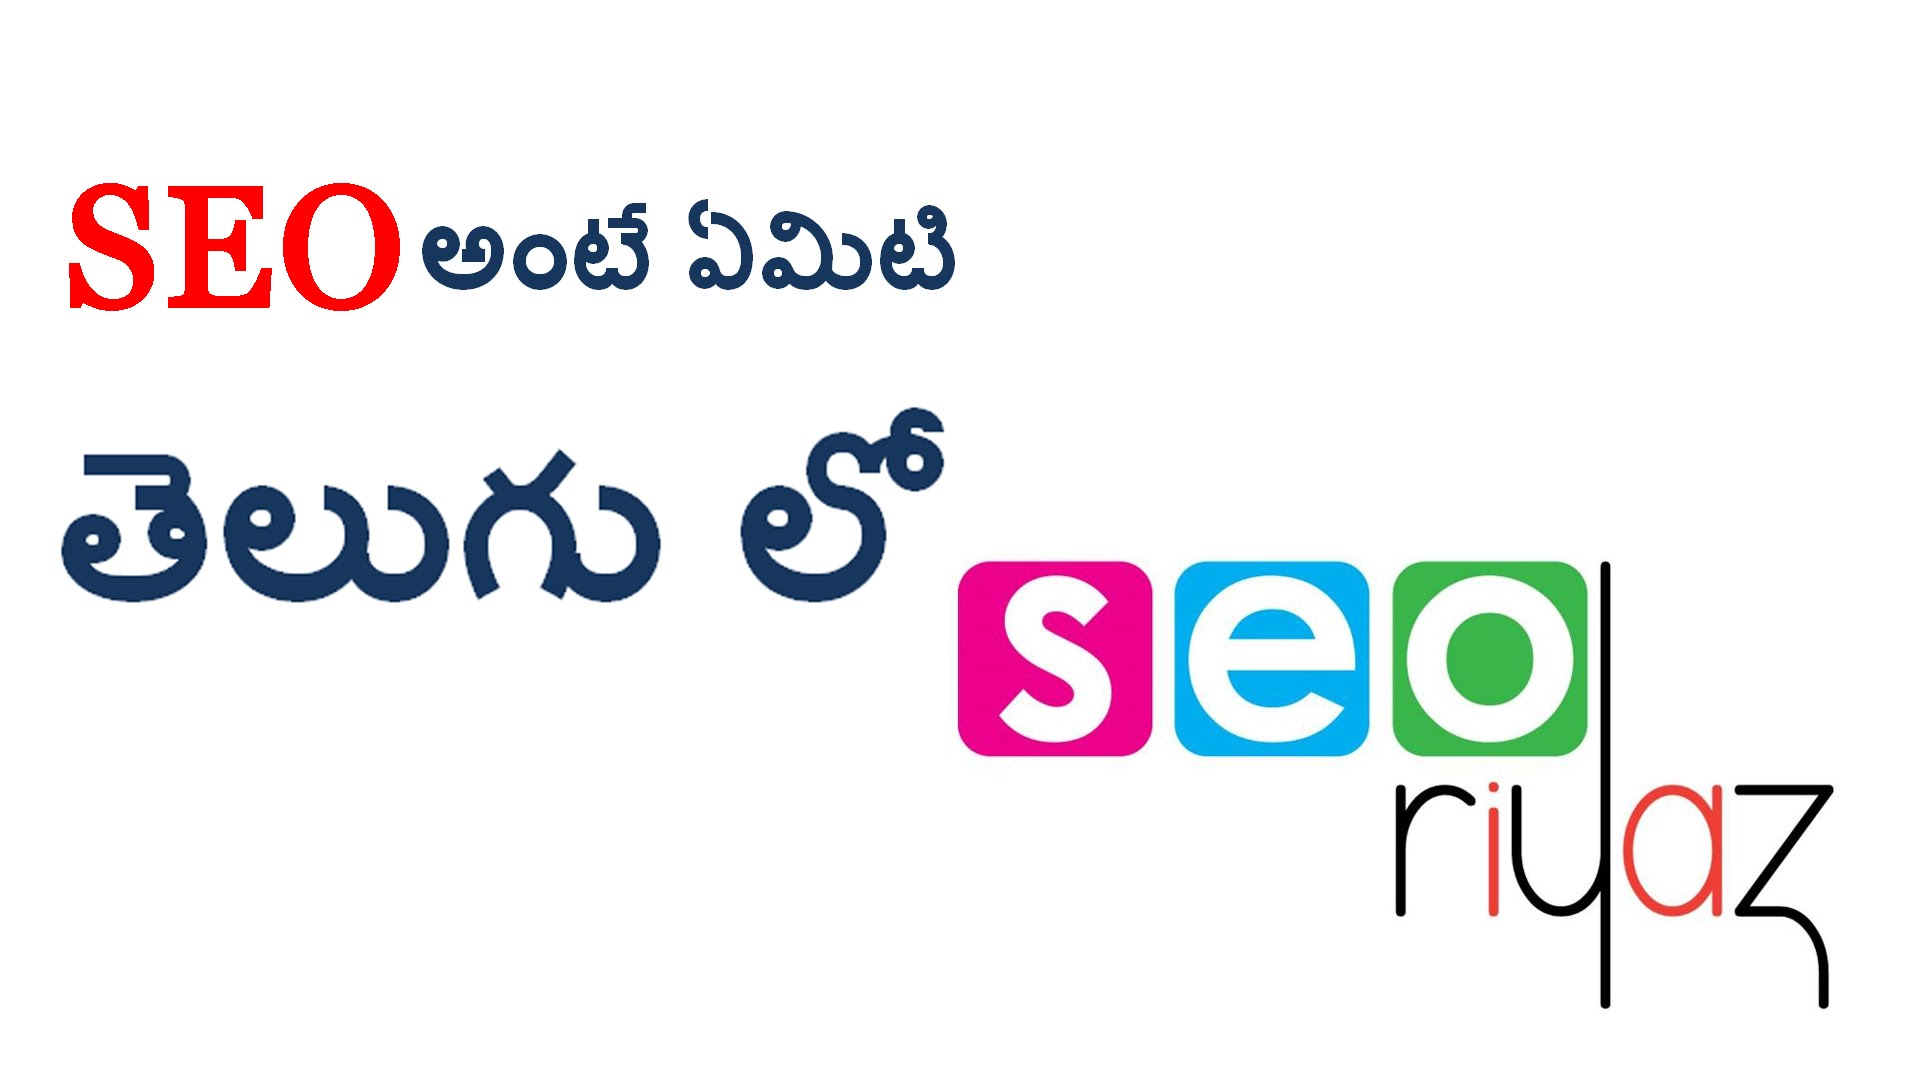 SEO Tutorial in Telugu | What is SEO | Search Engine Optimization Basics - Learn Digital Marketing